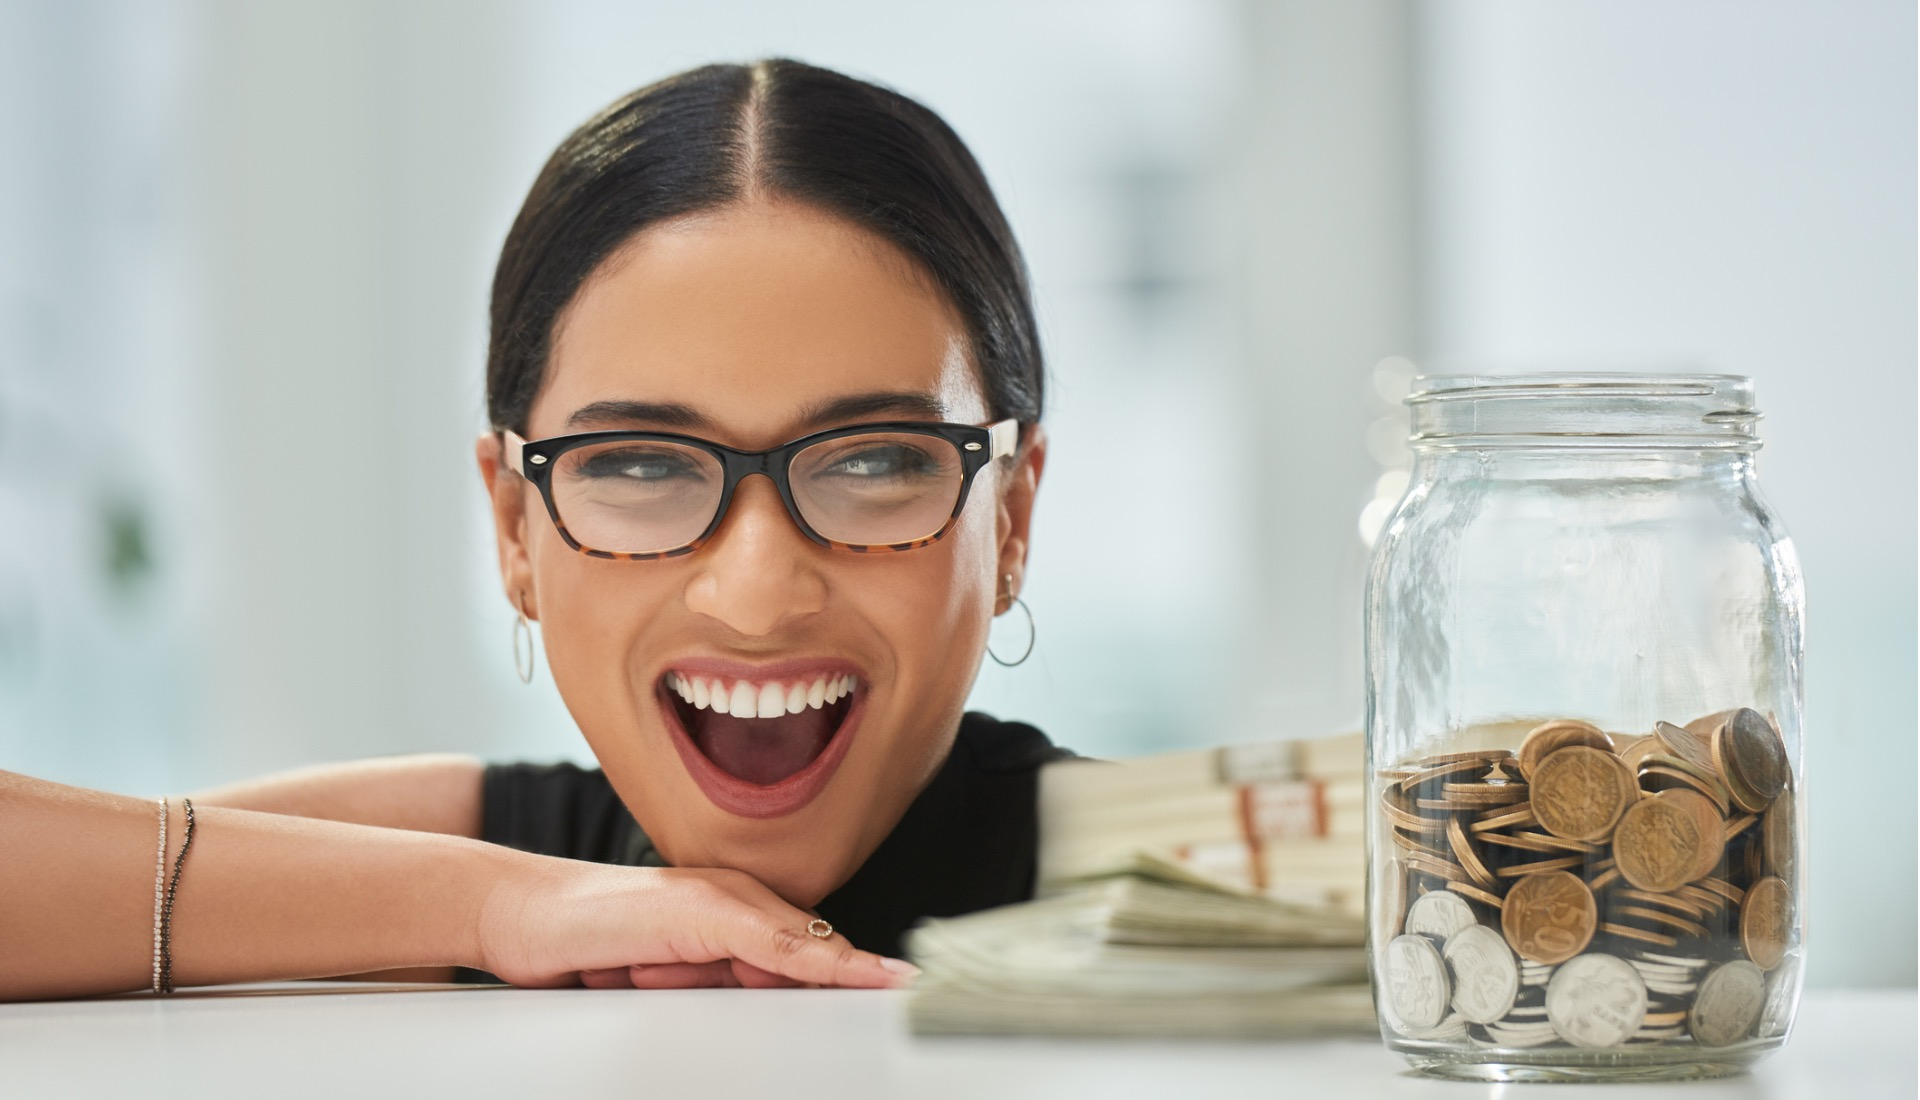 MarketWatch: How To Make Your Money Happier